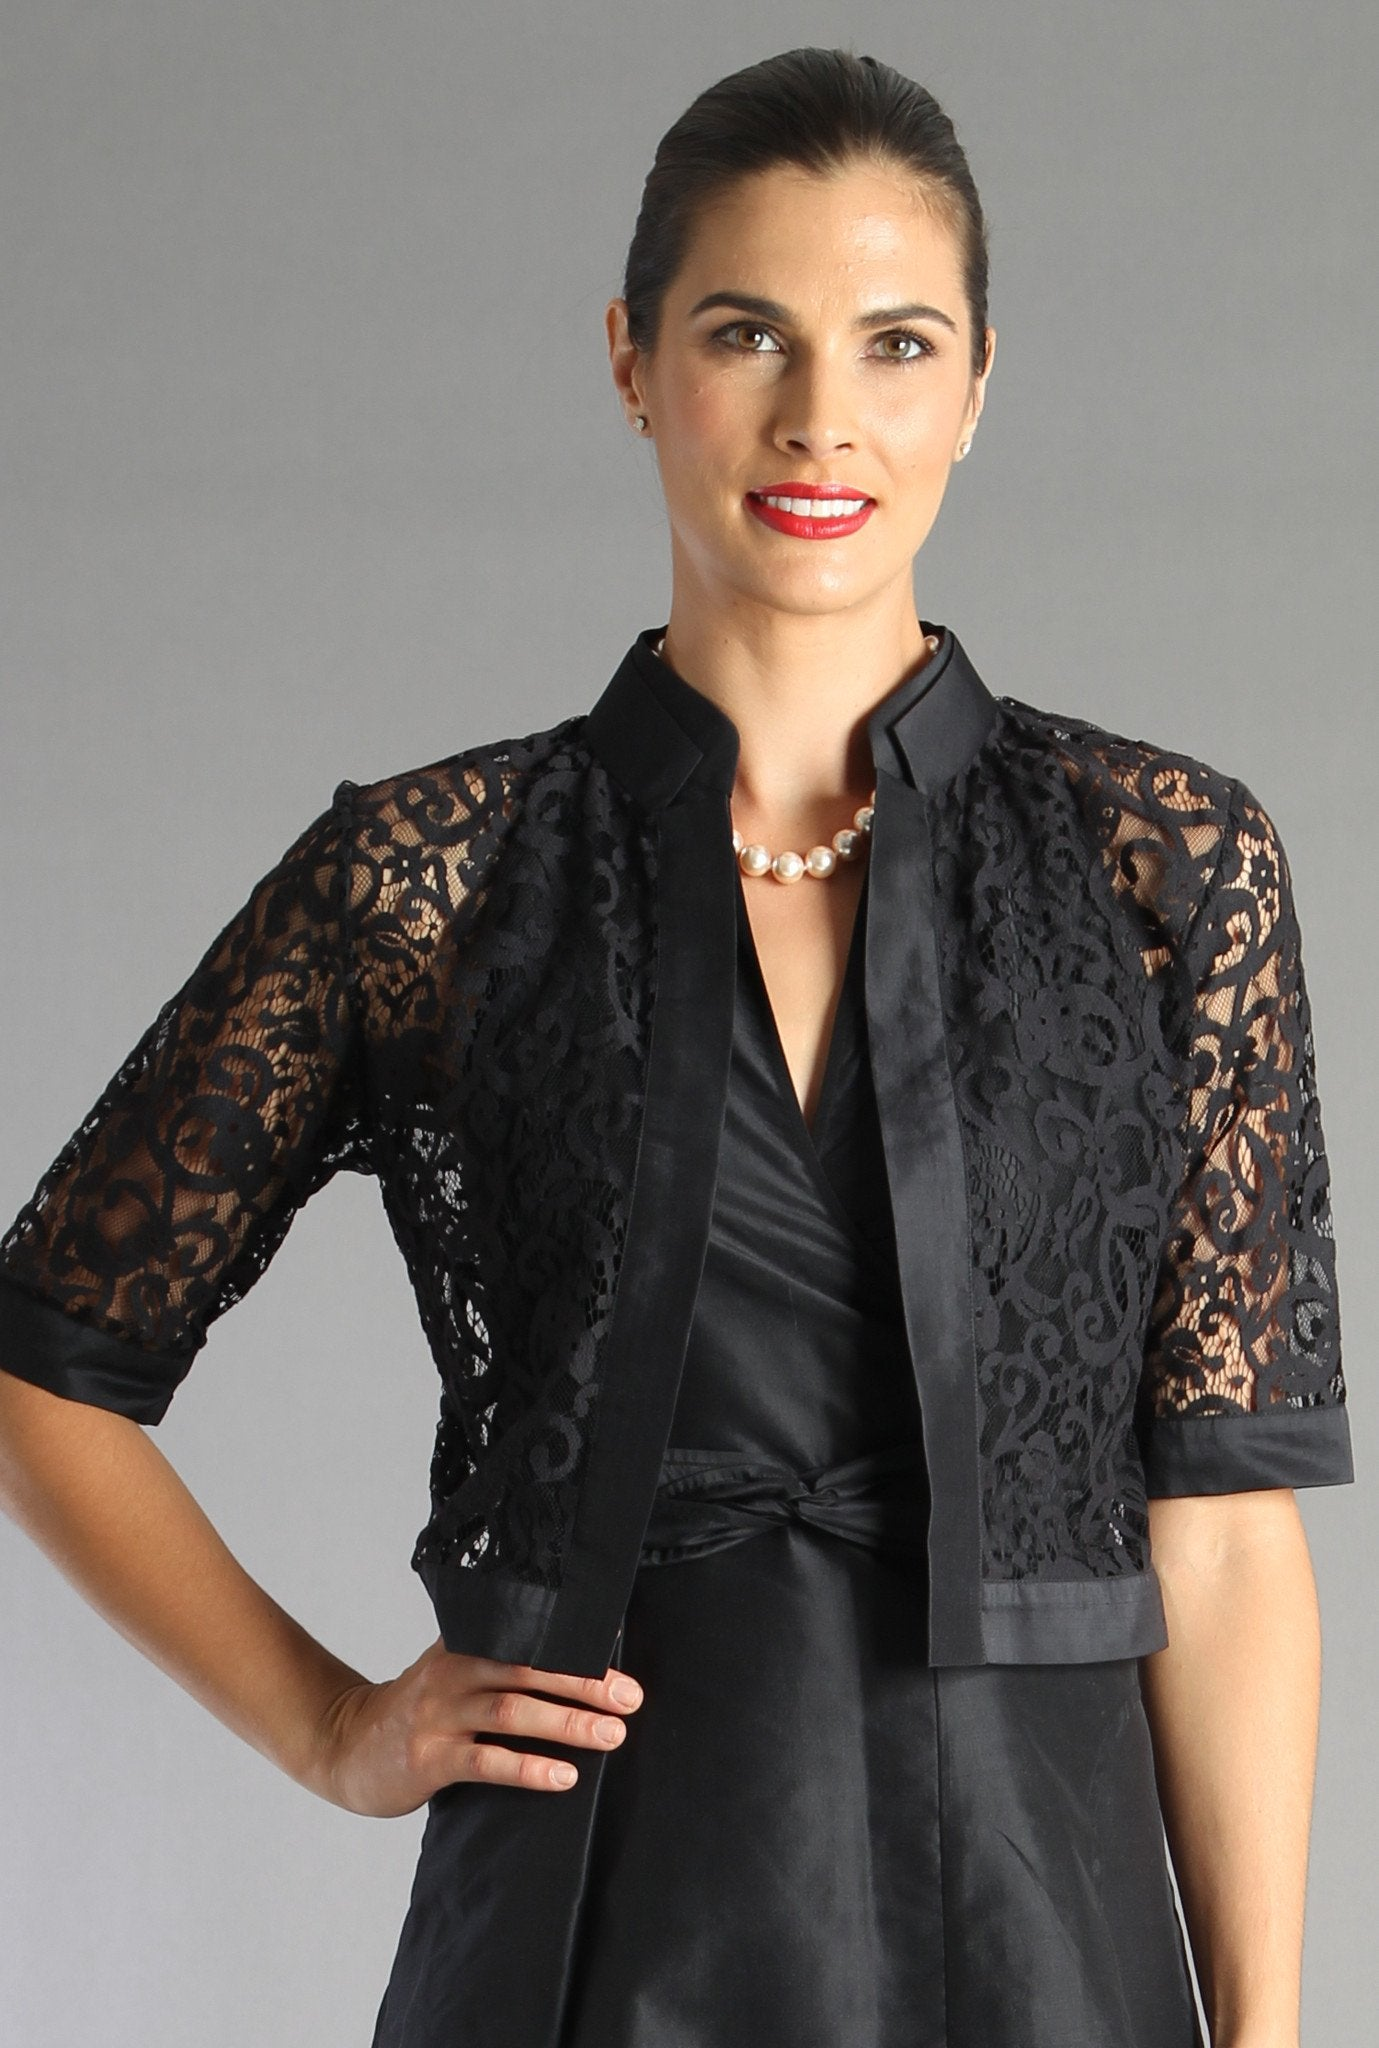 Lace Jacket - Black for the Mother of the Bride / Groom